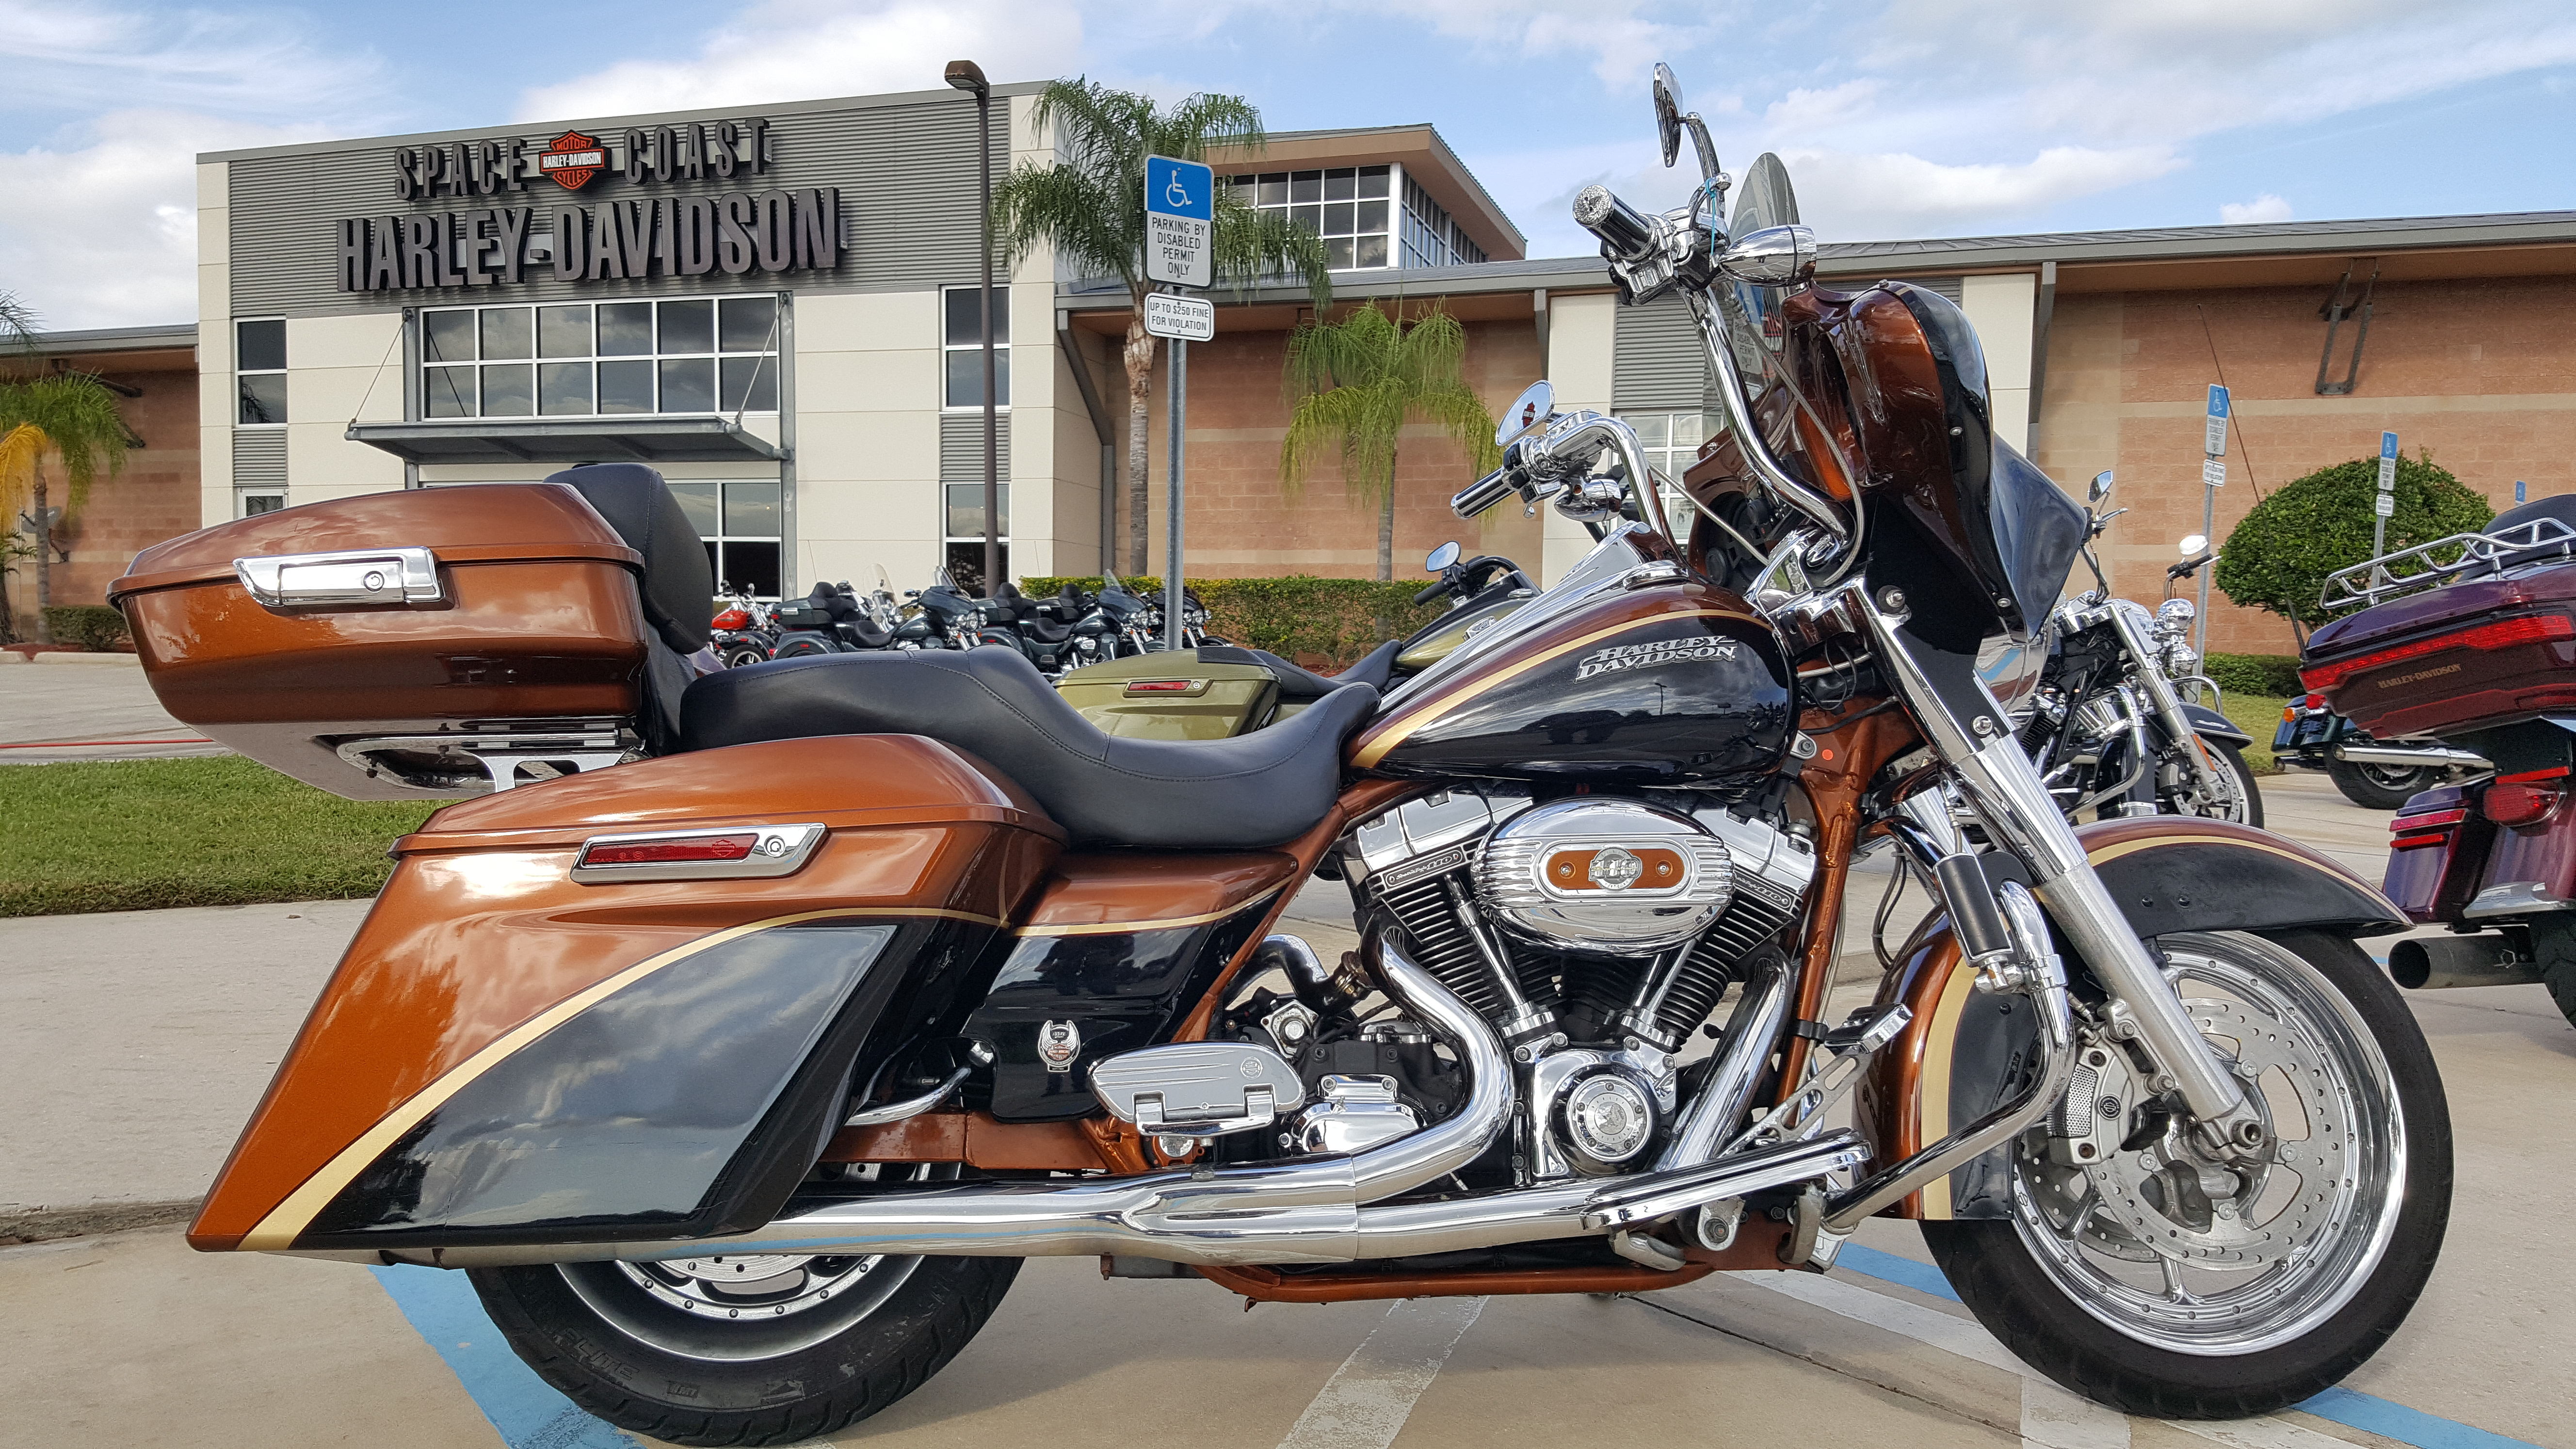 Pre-Owned 2008 Harley-Davidson Screamin Eagle Road King 105th Anniversary